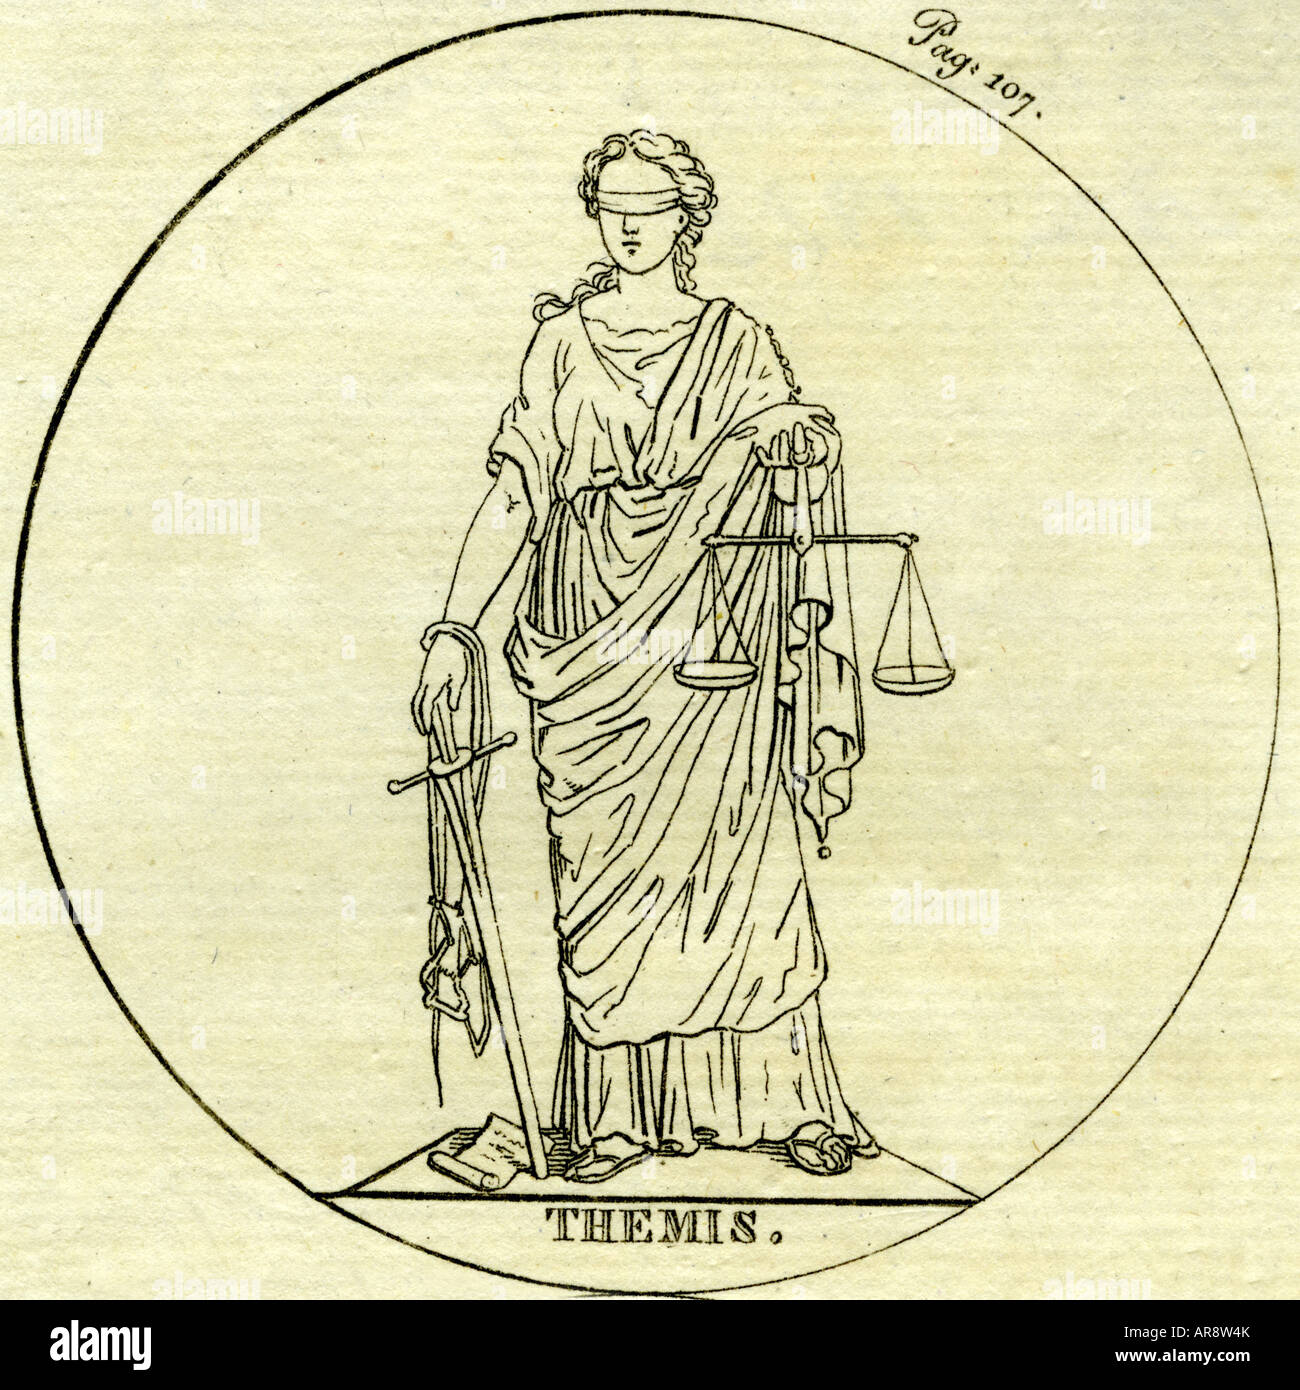 themis greek goddess of legal system and justice titan lover of